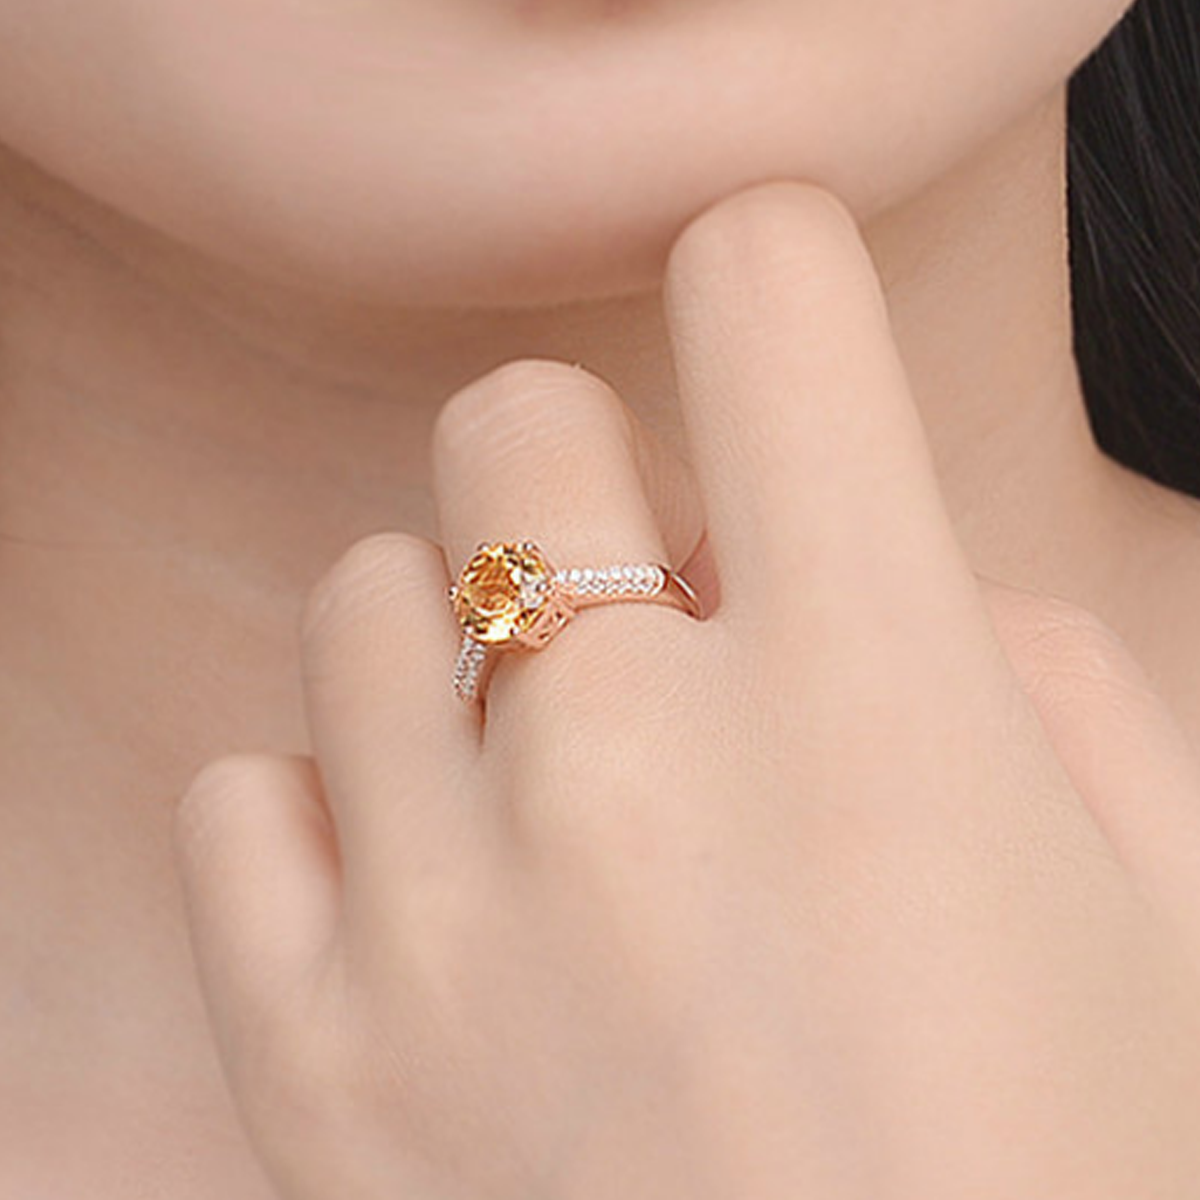 38 Best Topaz: Gemstone and Jewelry images | Crystals ...